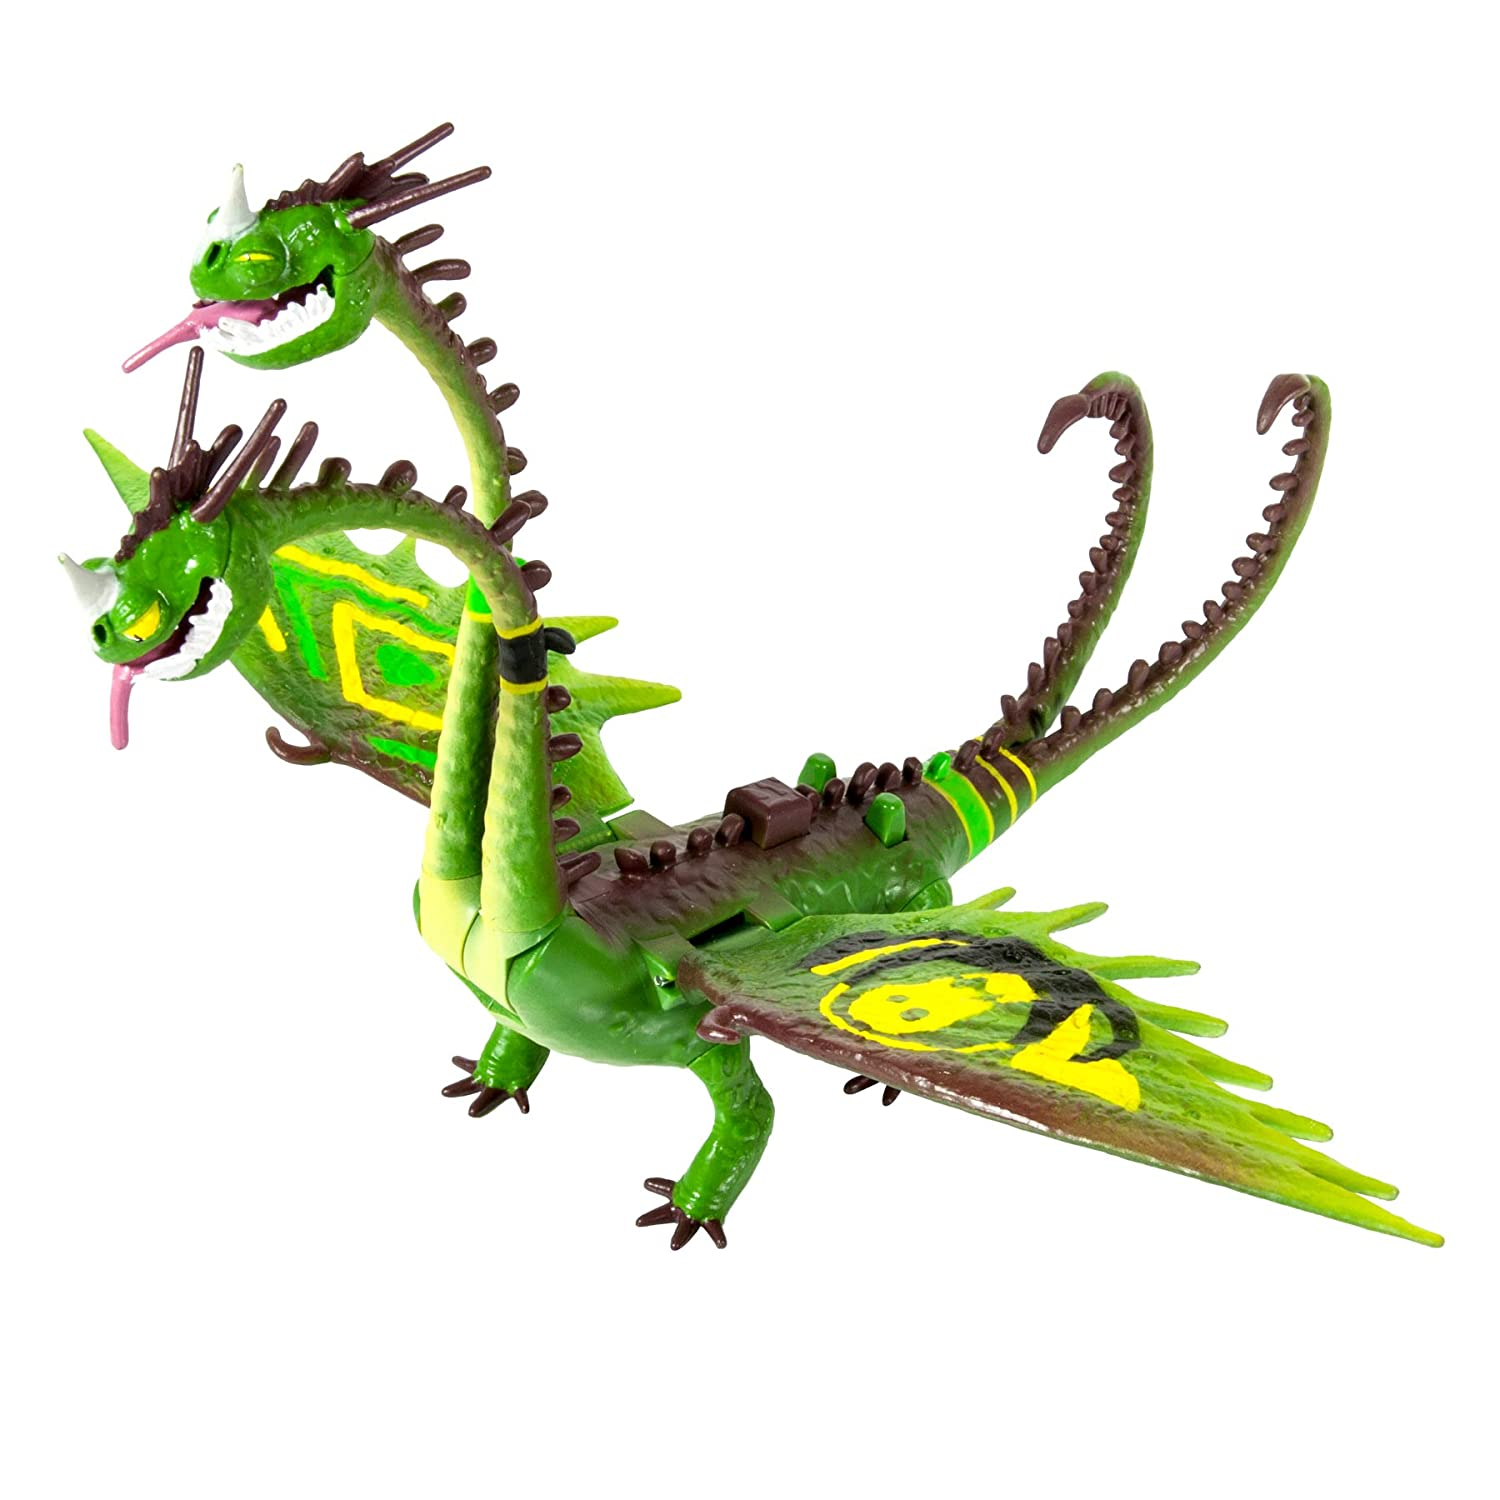 Amazon dreamworks dragons how to train your dragon 2 power amazon dreamworks dragons how to train your dragon 2 power dragon zippleback racing edition action figure toys games ccuart Choice Image